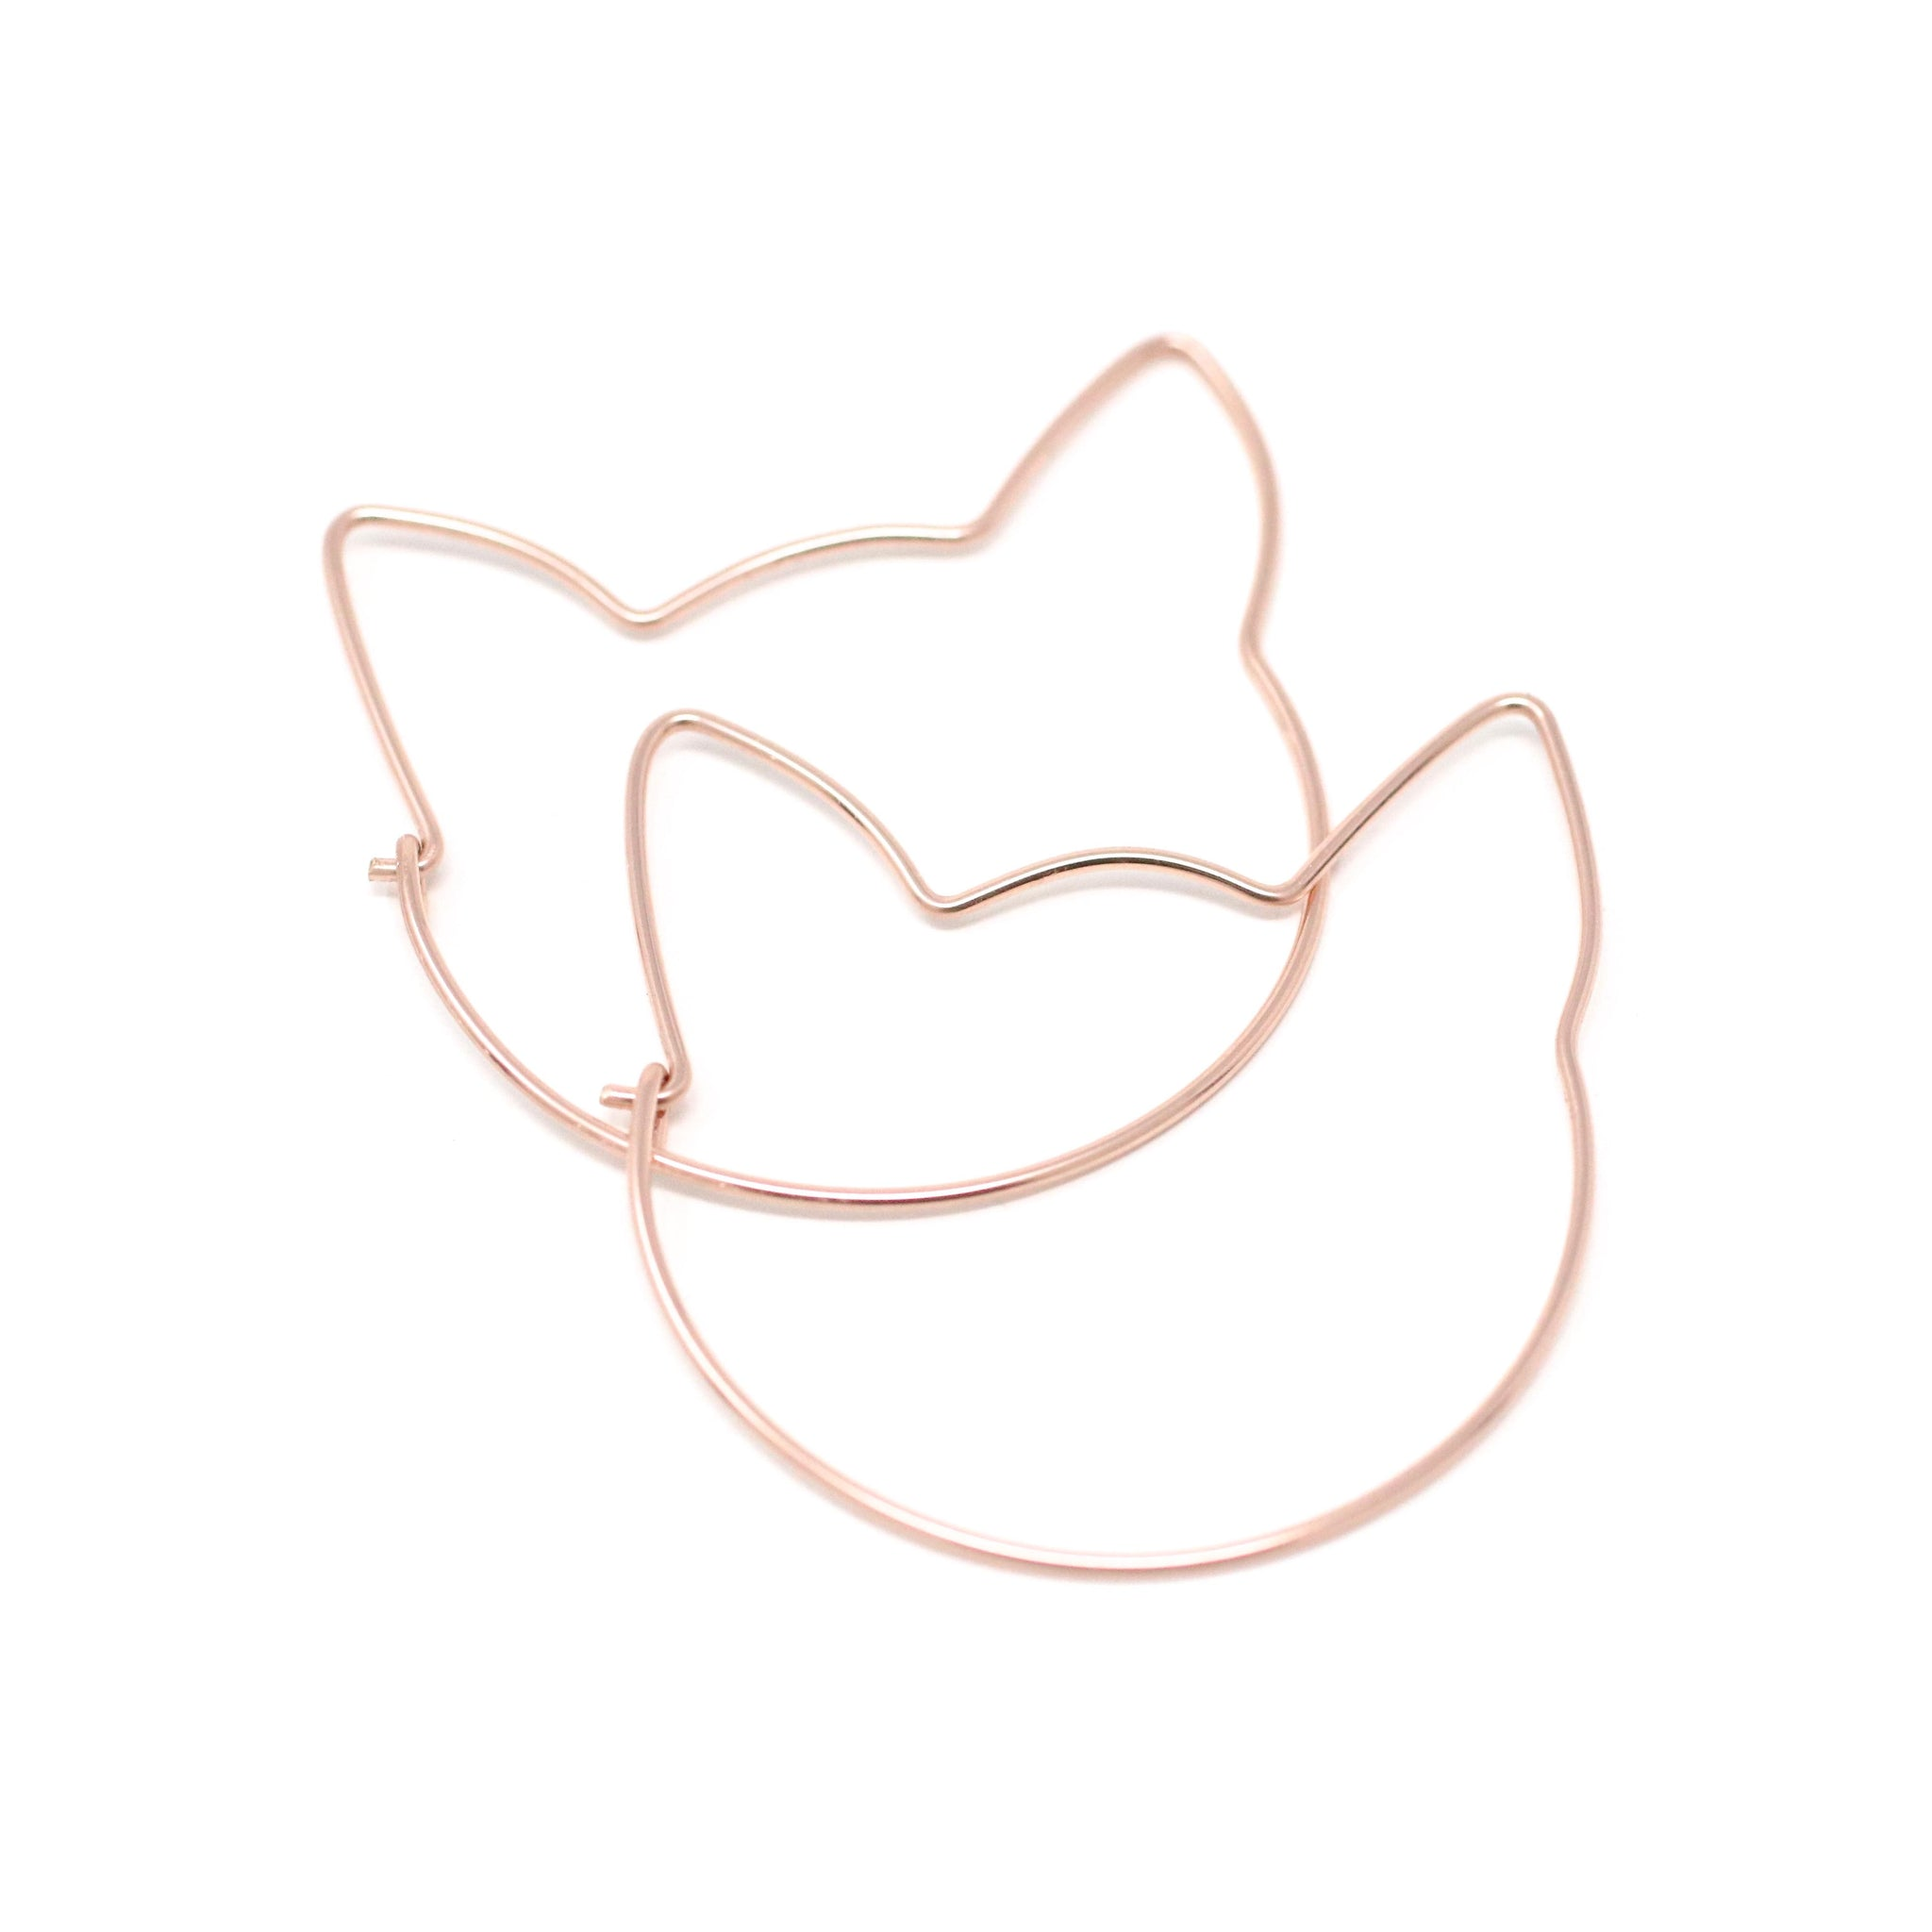 EARRINGS The Cat Hoops